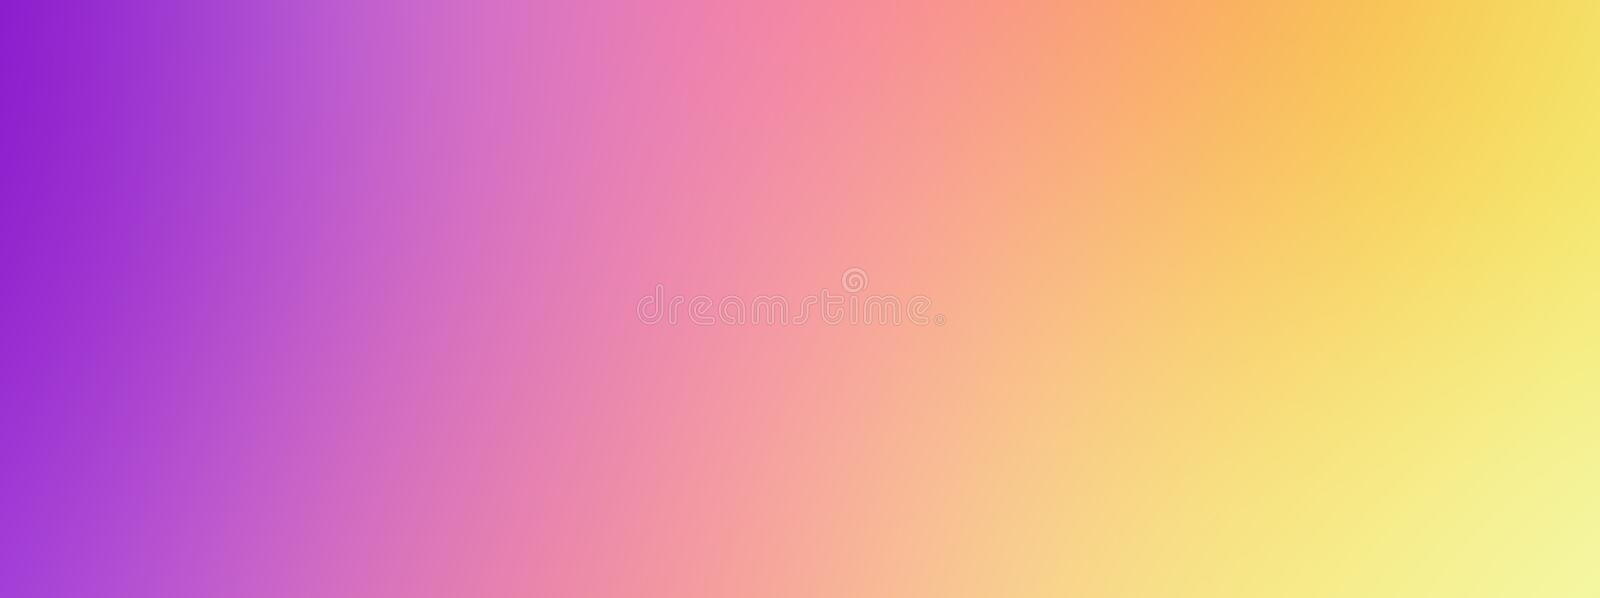 Abstract watercolor colorful blue purple violet violaceous red orange yellow blur gradient background web banner template royalty free illustration